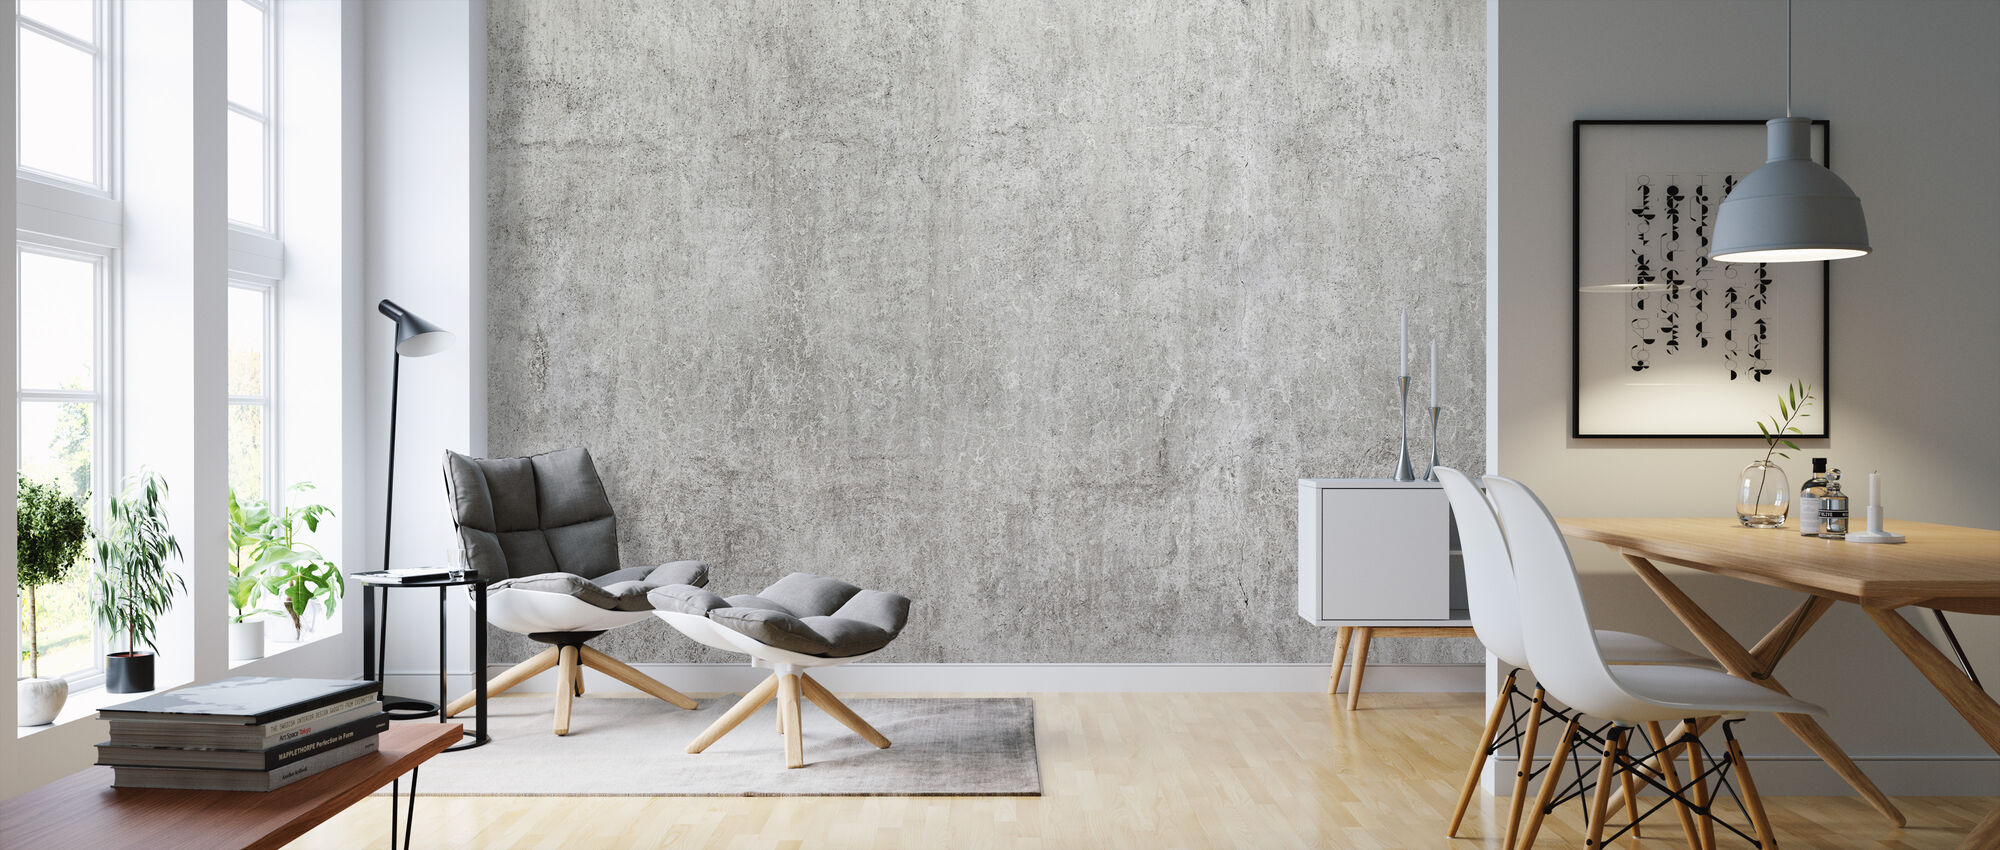 Industrial Concrete Wall - Wallpaper - Living Room